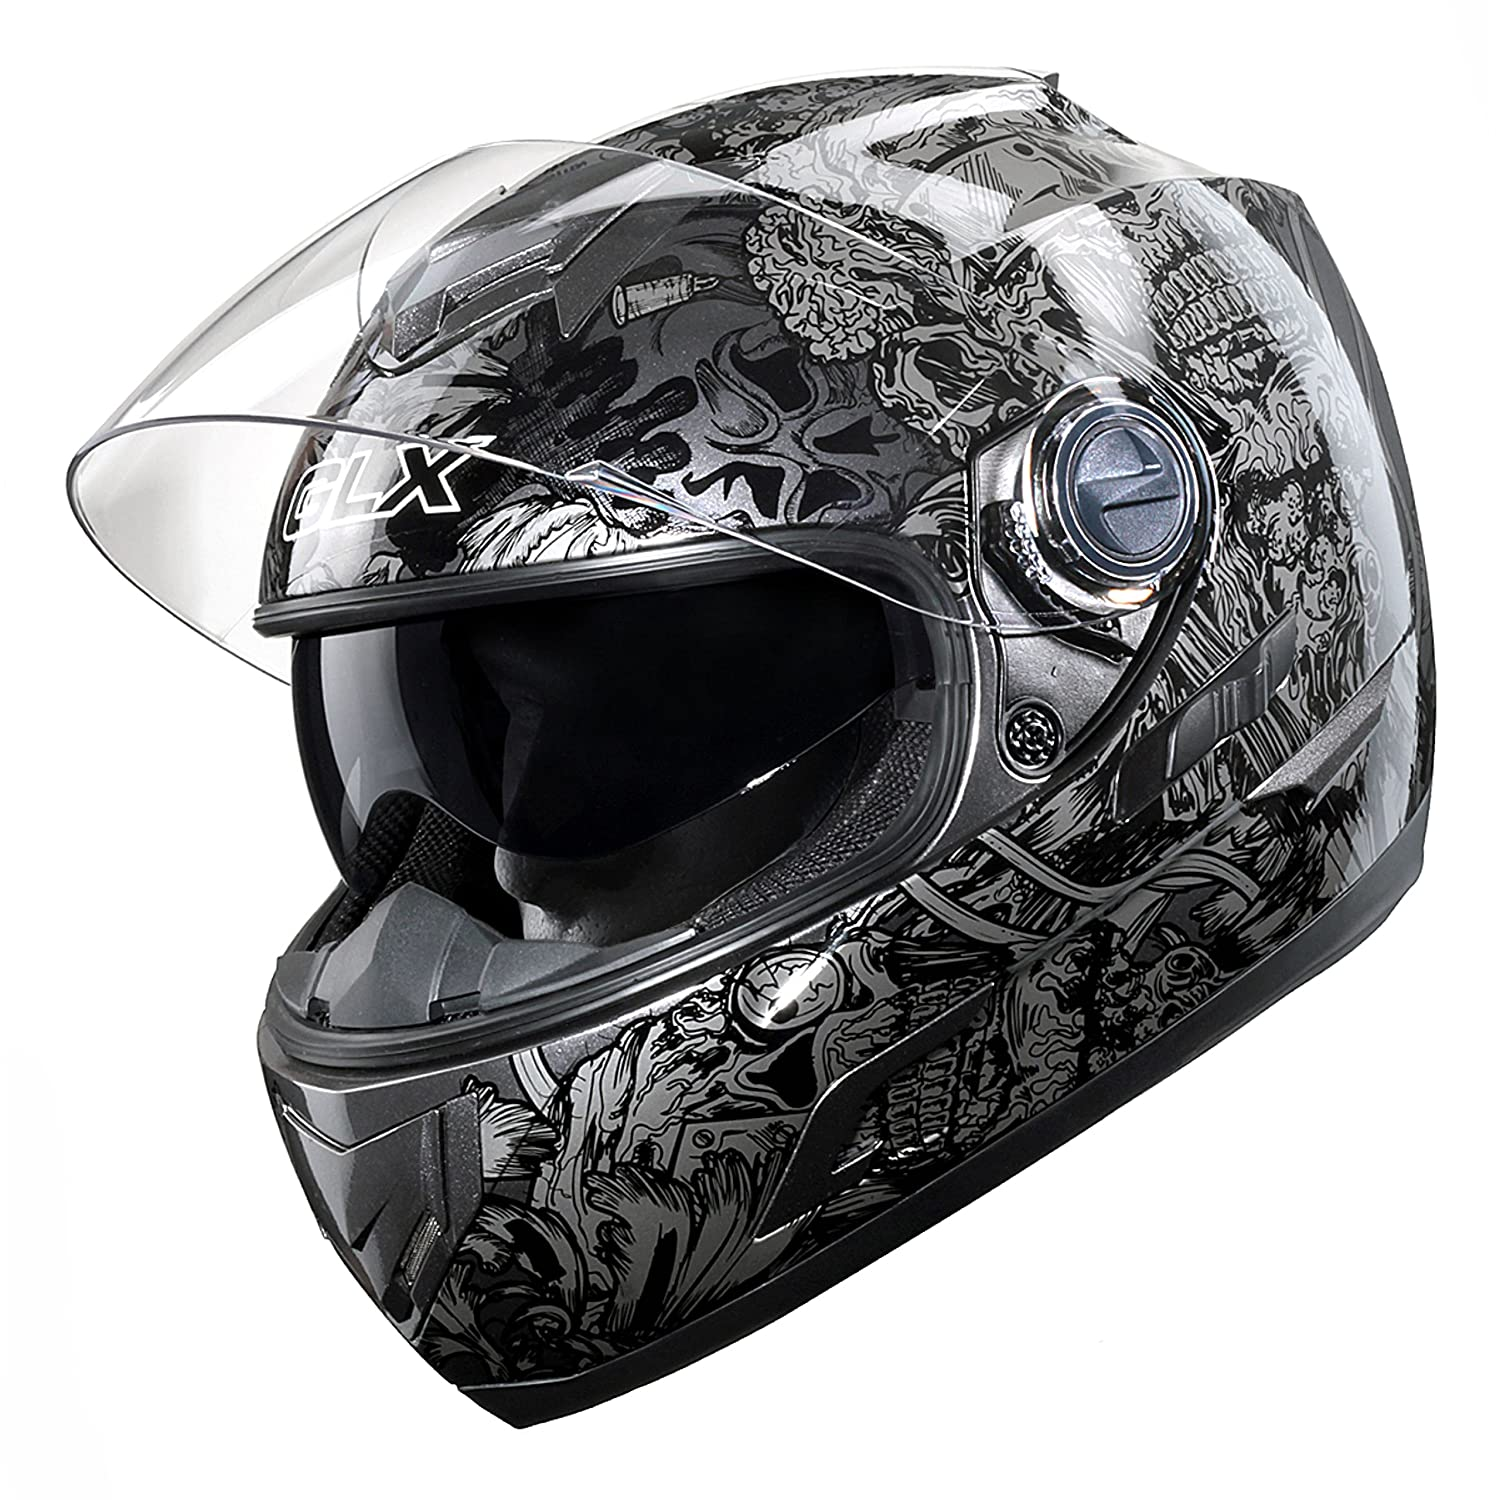 GLX GX-15 Full Face Motorcycle Helmet